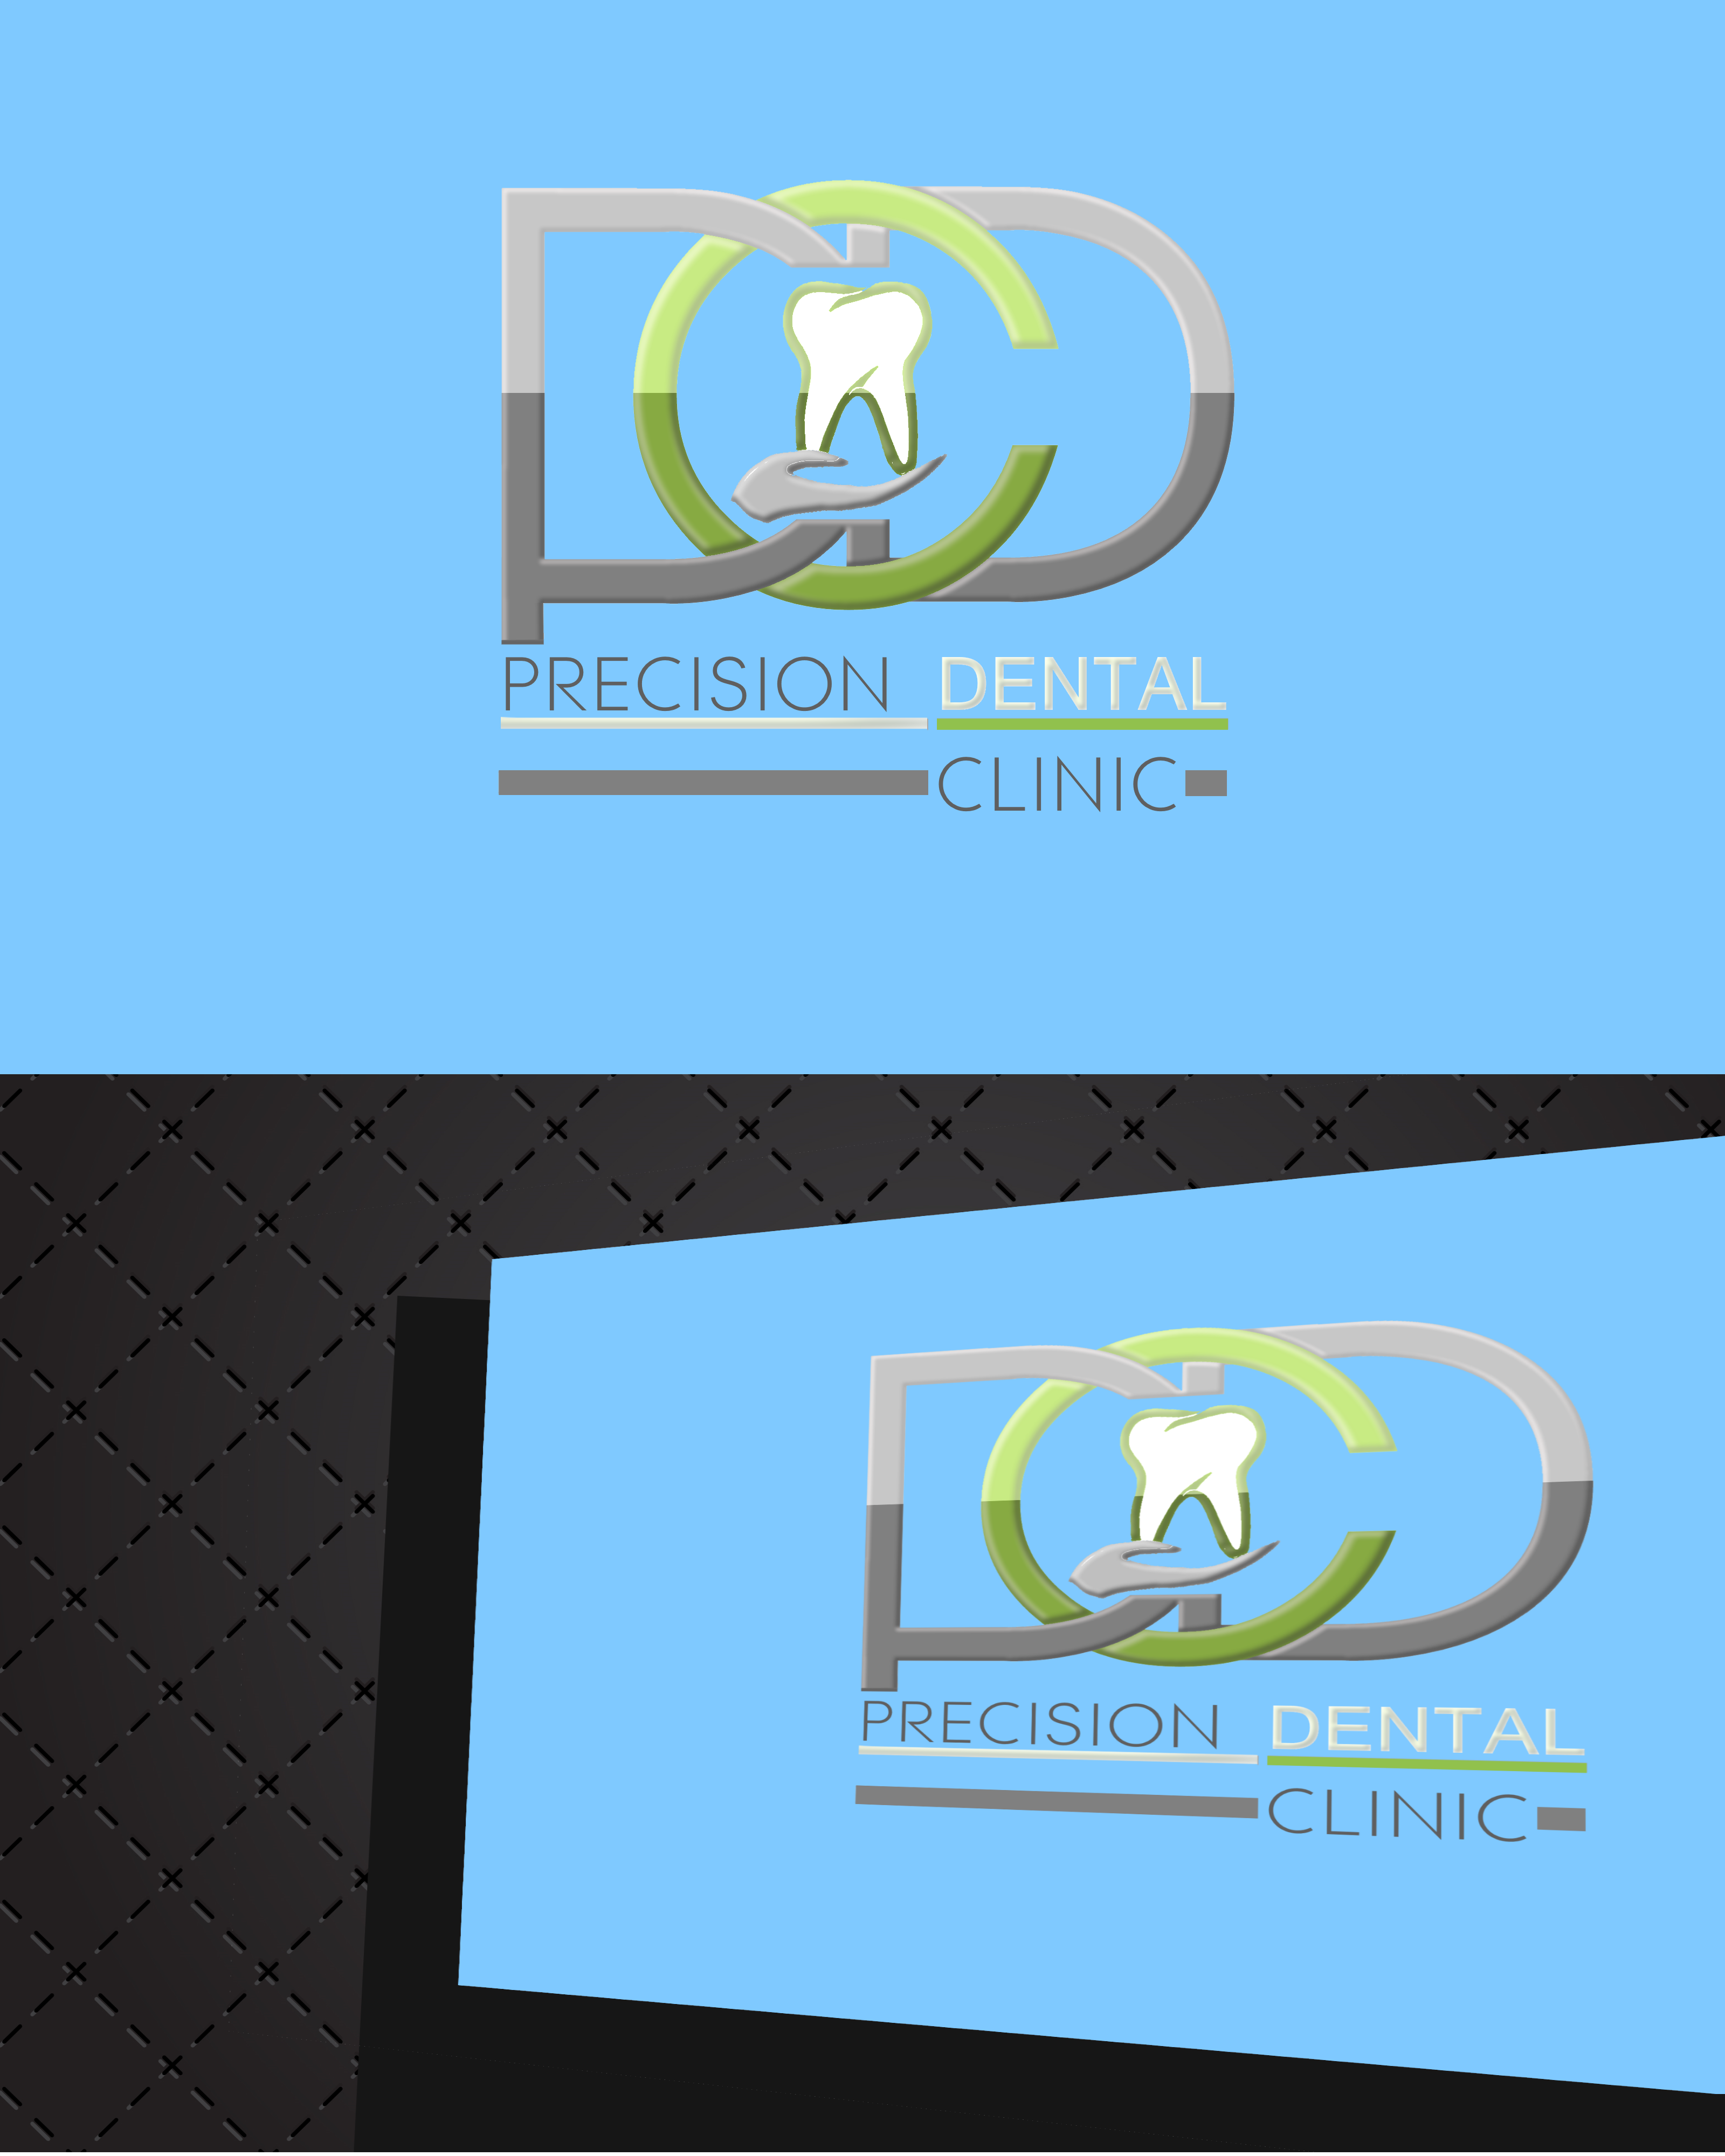 Logo Design by Roberto Bassi - Entry No. 132 in the Logo Design Contest Captivating Logo Design for Precision Dental Clinic.